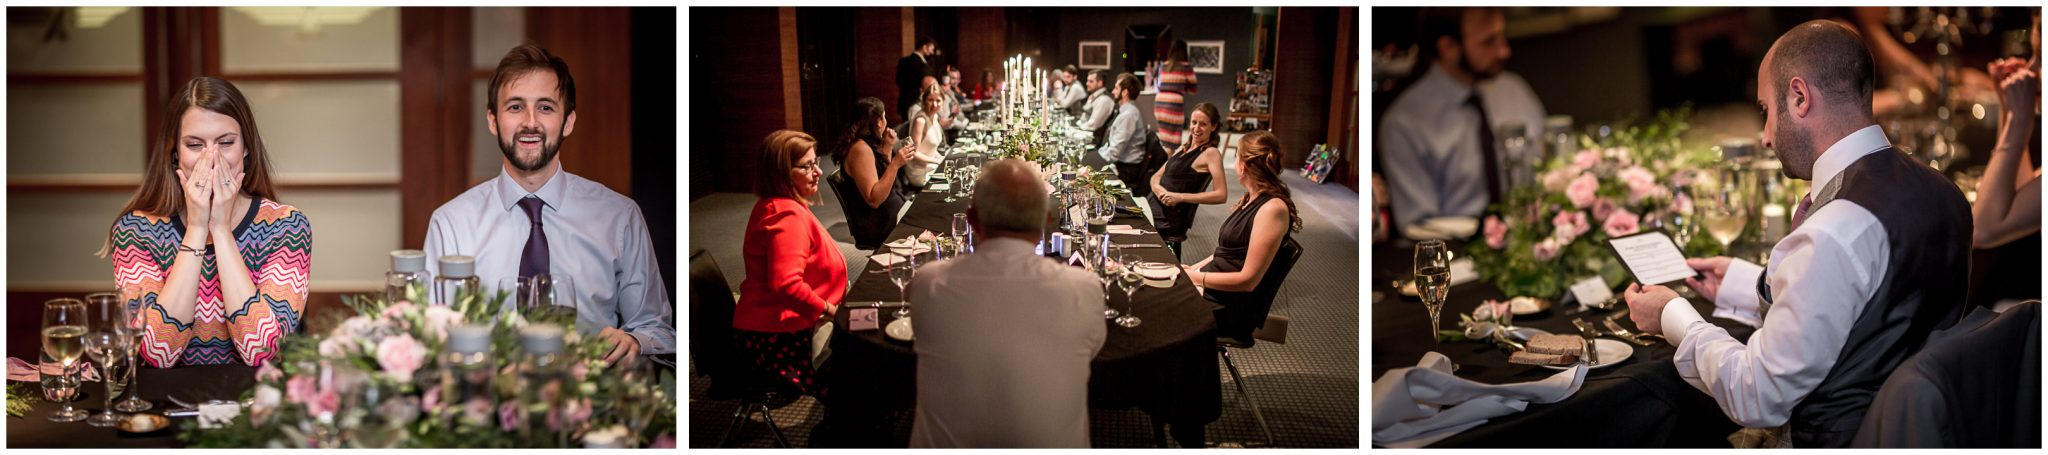 Wedding reception in the Sky Bar at the Aviator Hotel